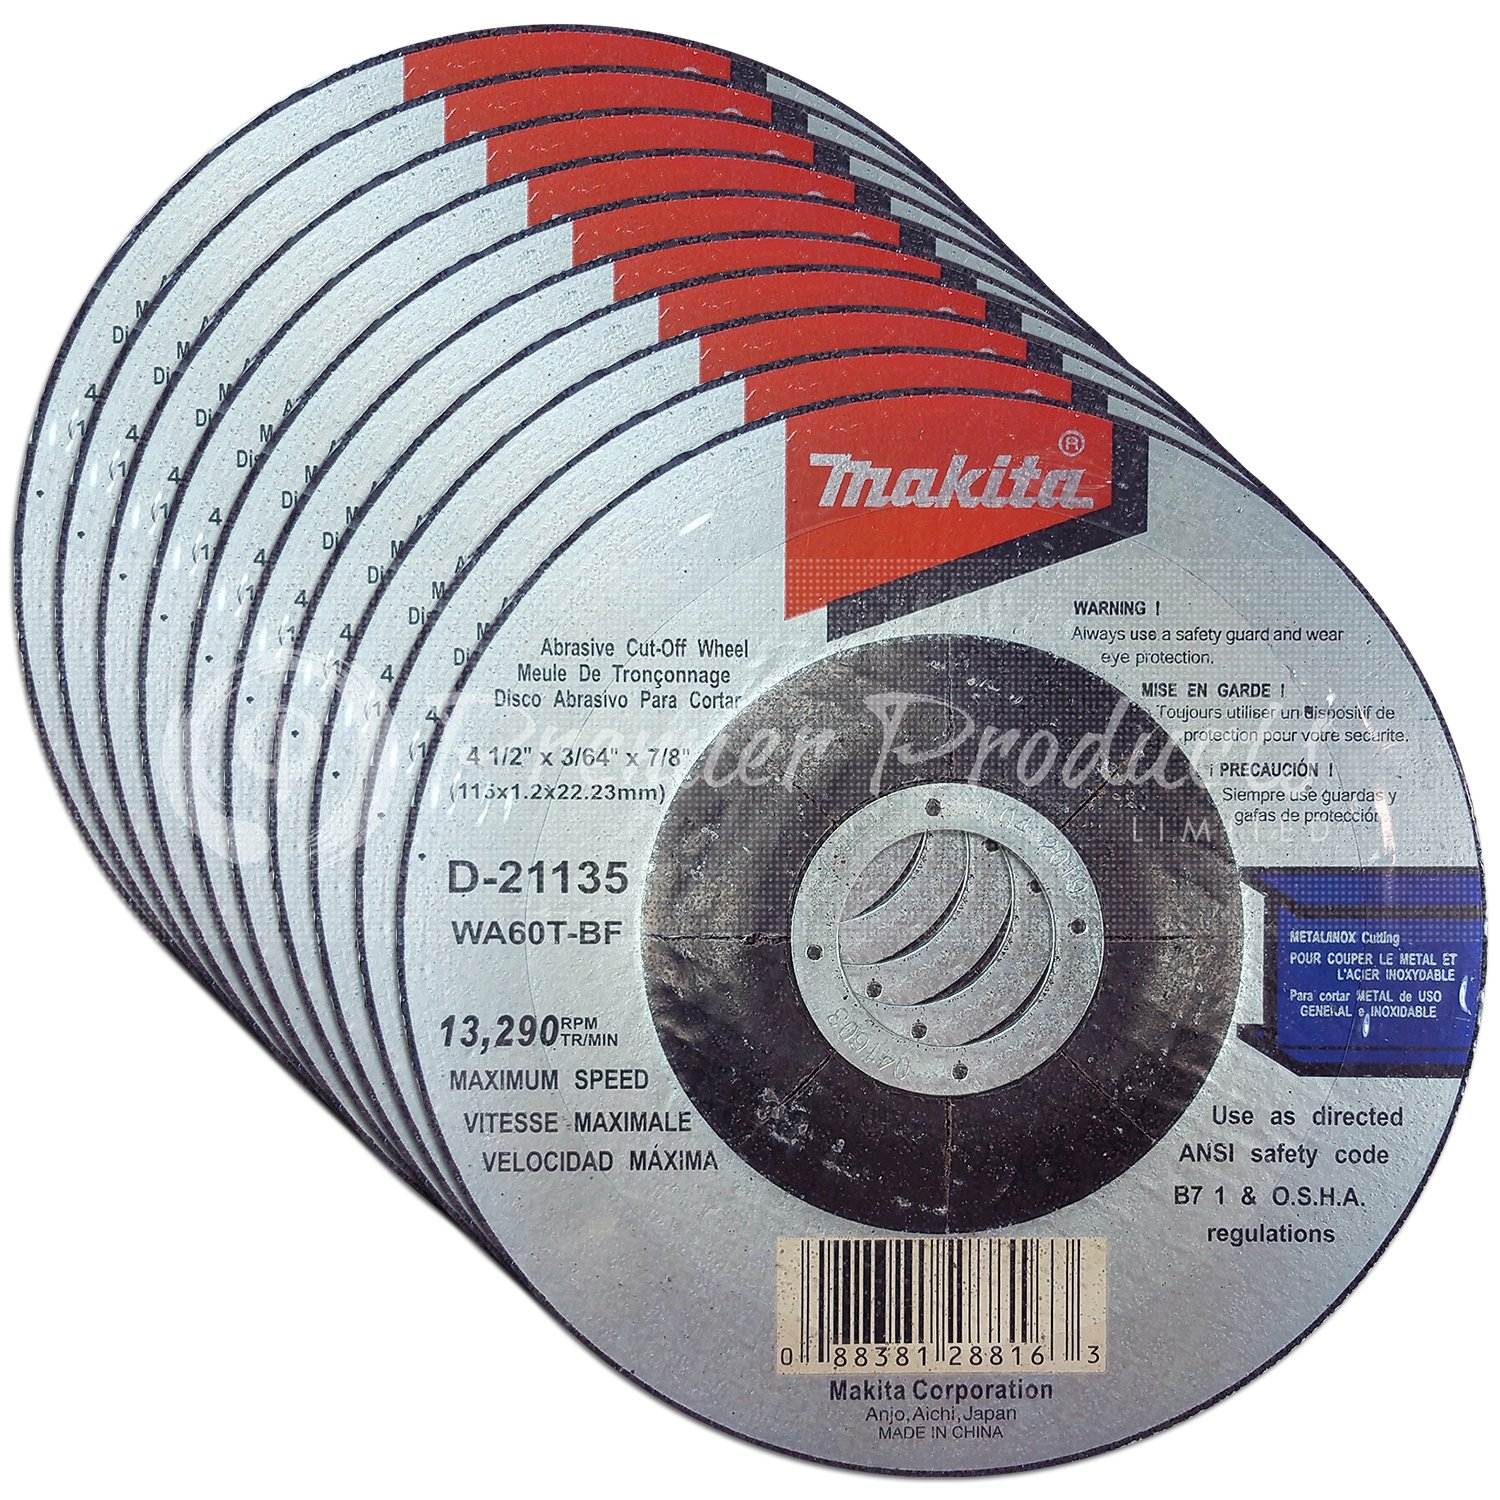 4 Inch Cut Off Wheels For 4 Grinders Makita 5 Pack 4 x .045 For M10 x 1.25 Spindle Thread Aggressive Cutting For Metal /& Stainless Steel